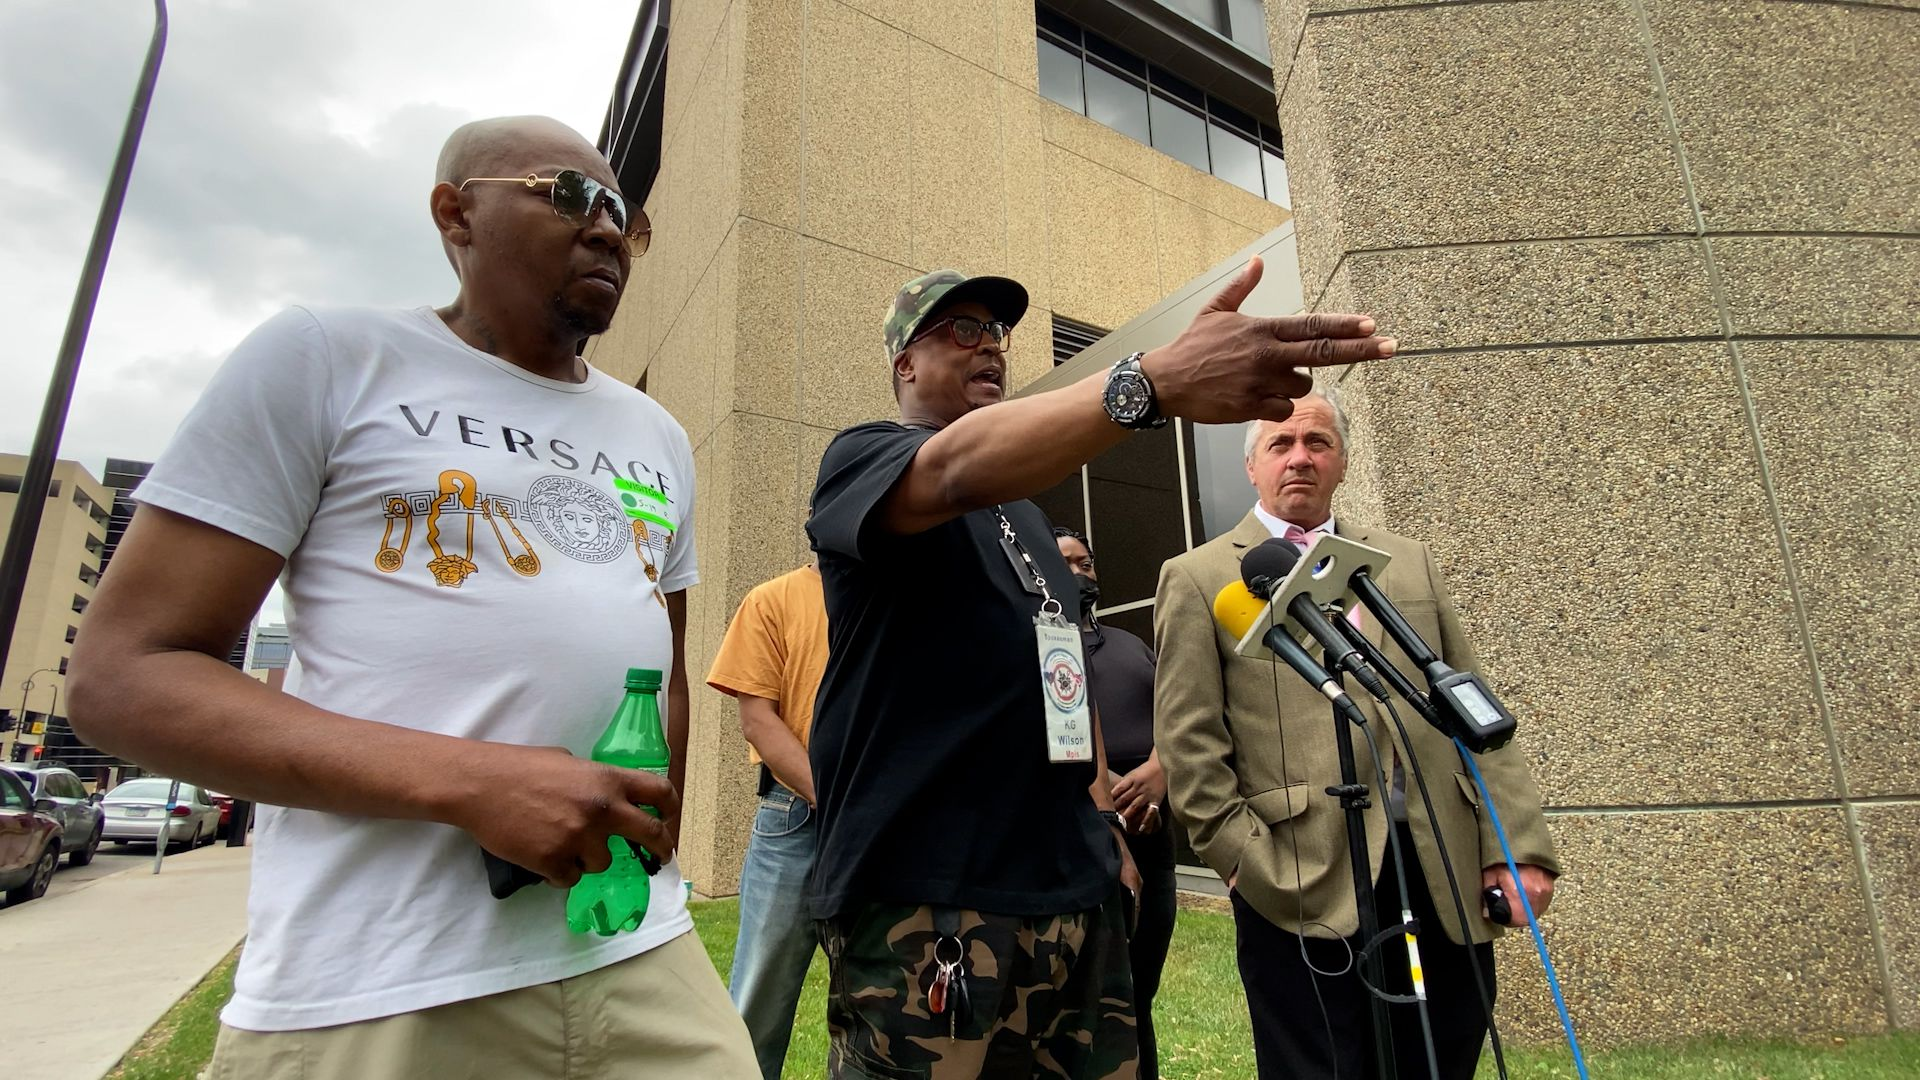 Minneapolis activist K.G. Wilson and Antri Sease, Sr., the two grandfathers to Aniya Allen, shared their grief over the loss of the six-year-old whose killer has yet to turn him/herself in.